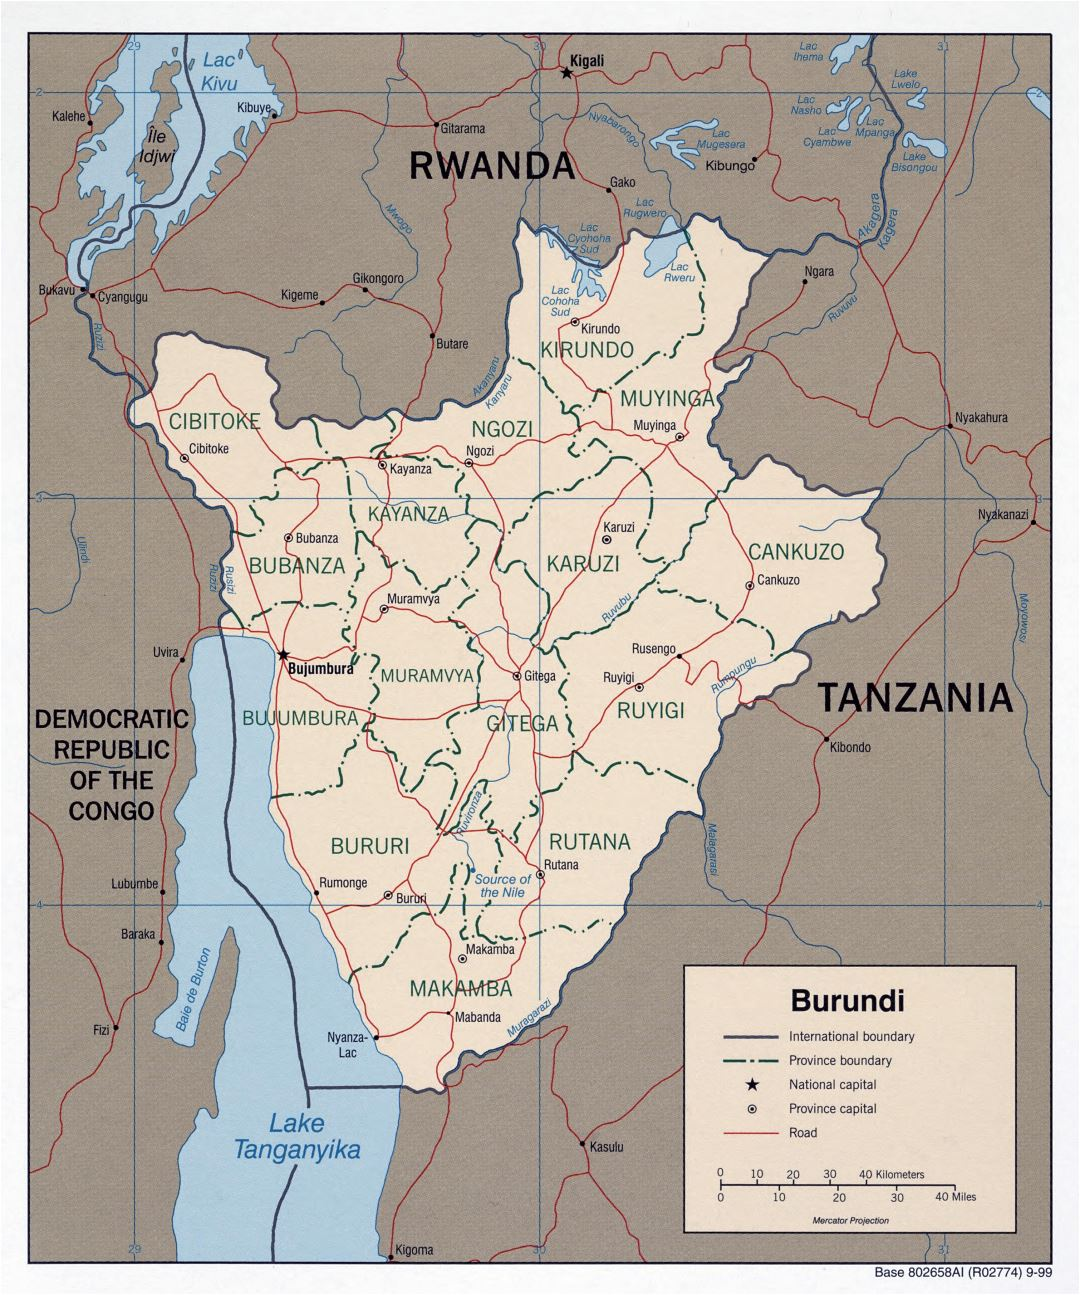 Large scale political and administrative map of Burundi with roads and major cities - 1999